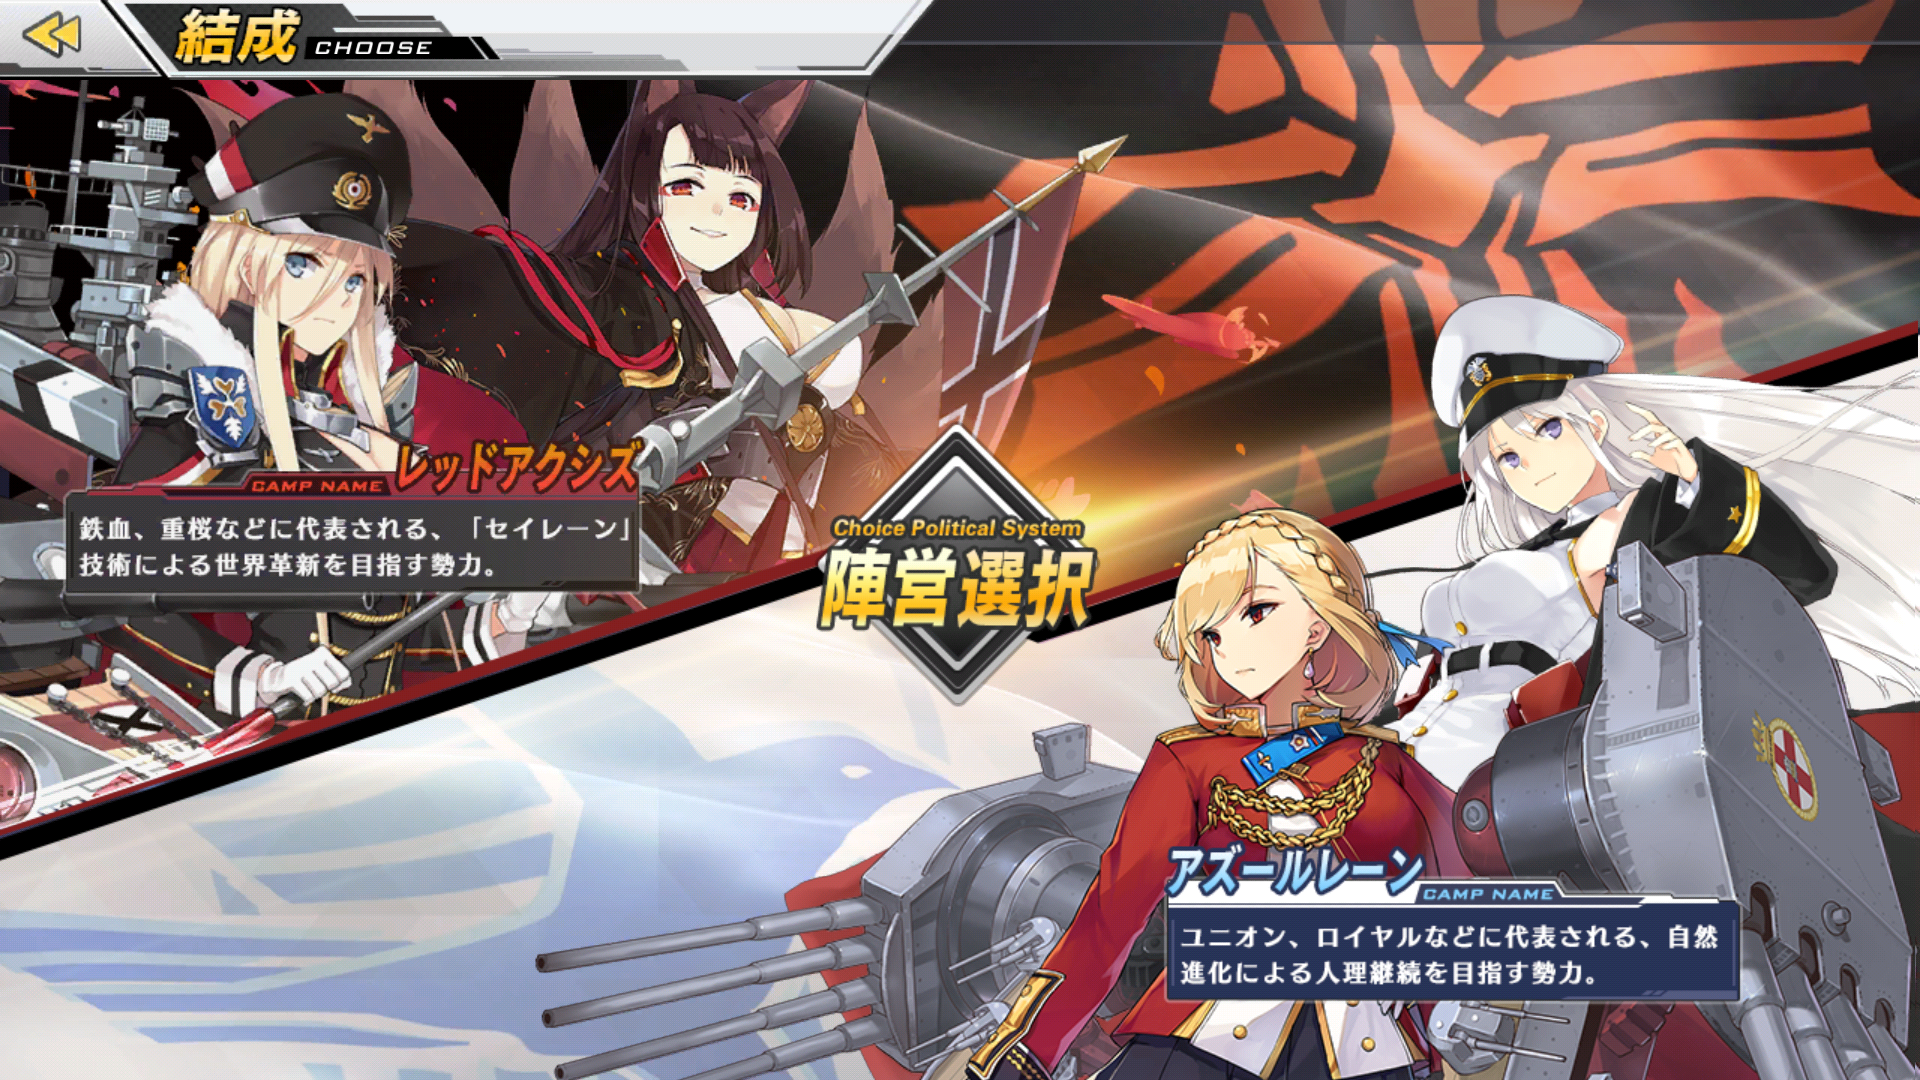 How Azur Lane is able to rival Kantai Collection's popularity in